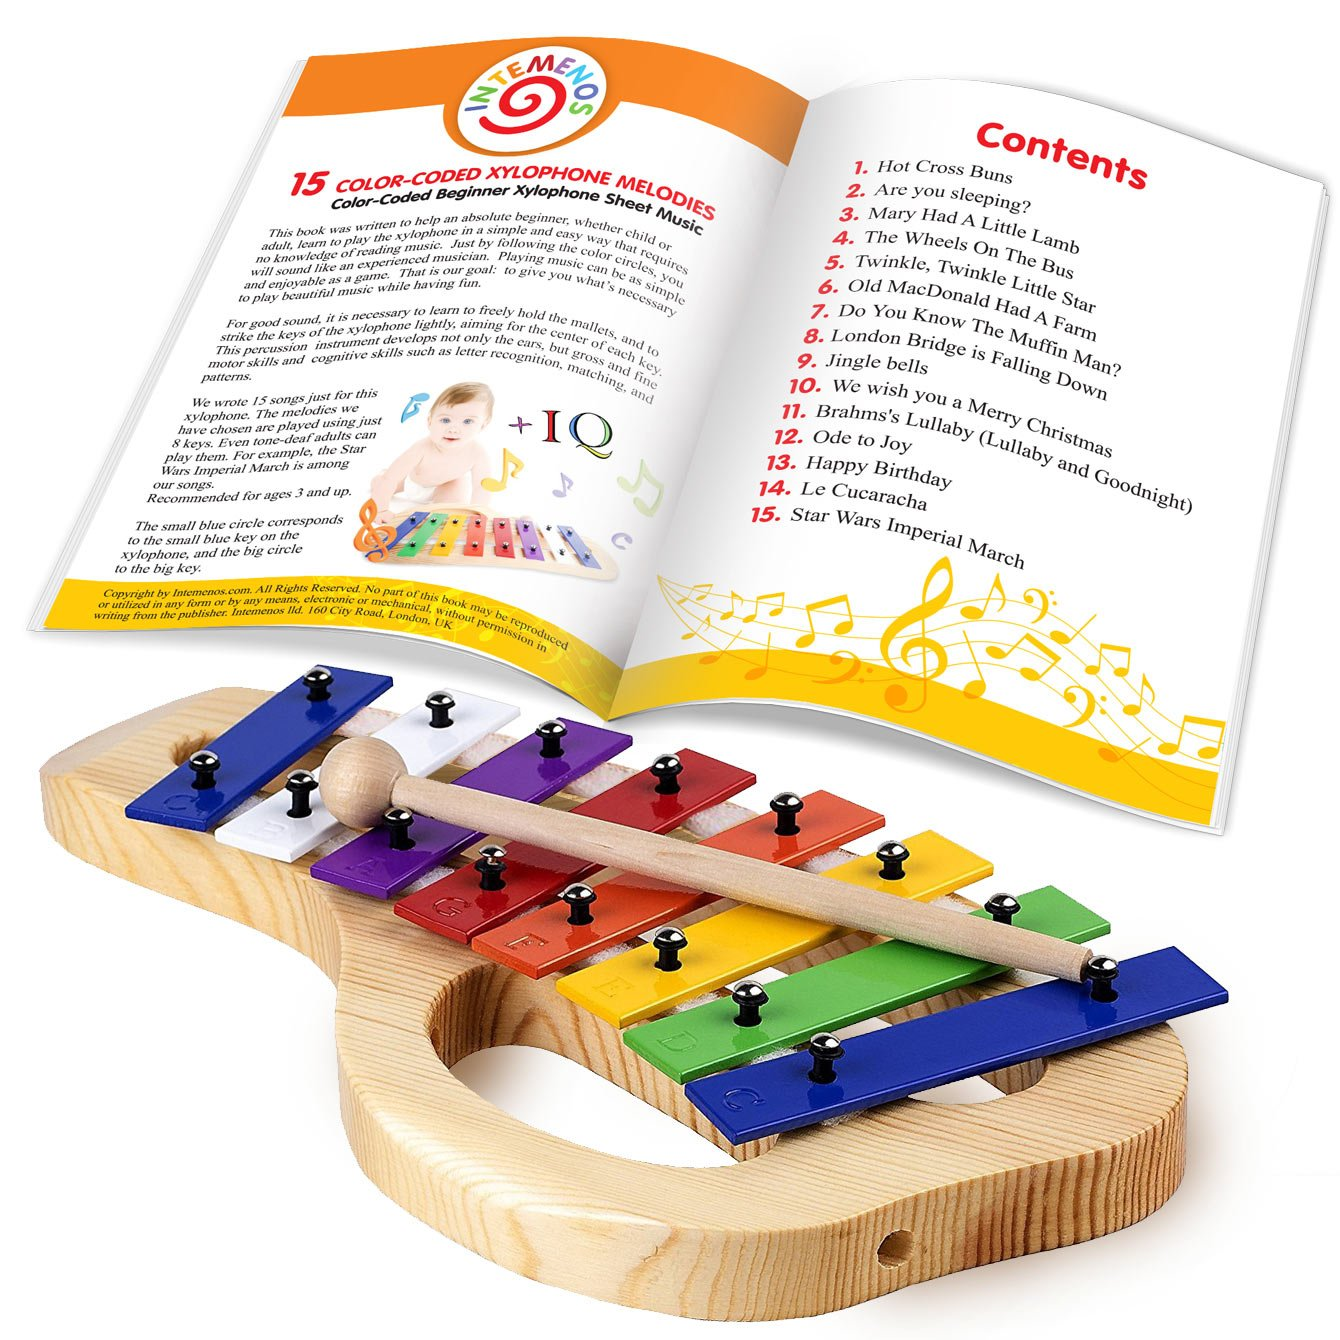 Xylophone For Children 15 Color Coded Song Sheet Music E Book For